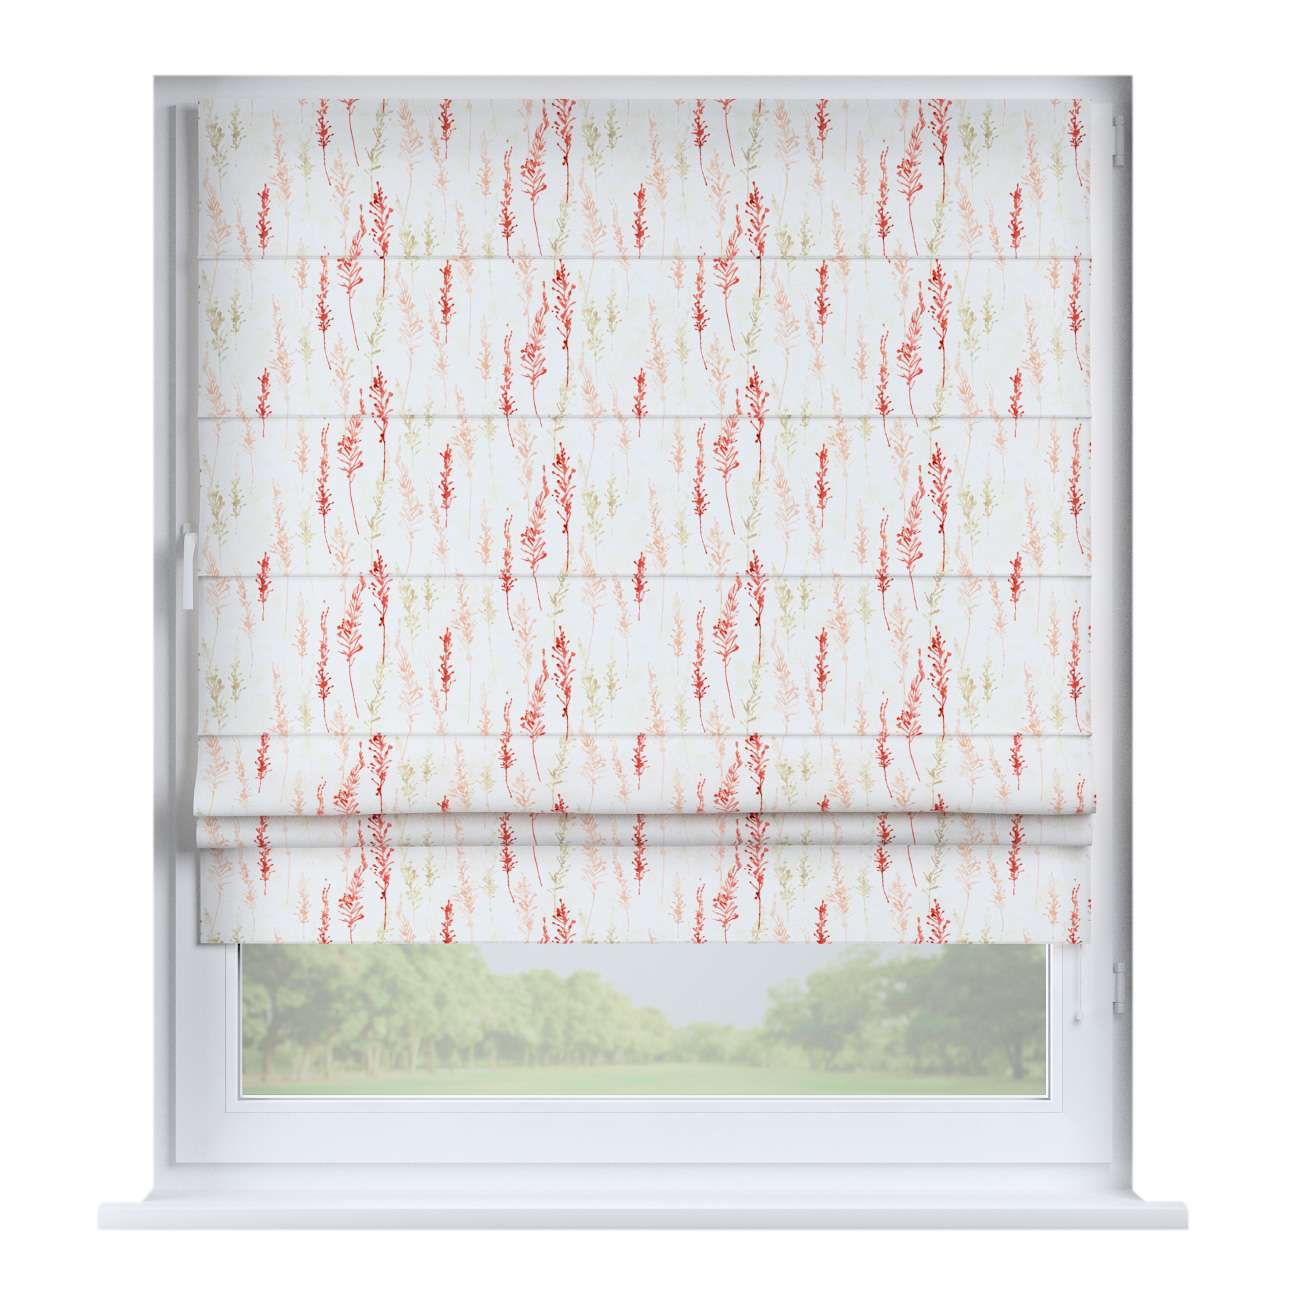 Padva roman blind  80 x 170 cm (31.5 x 67 inch) in collection Acapulco, fabric: 141-37